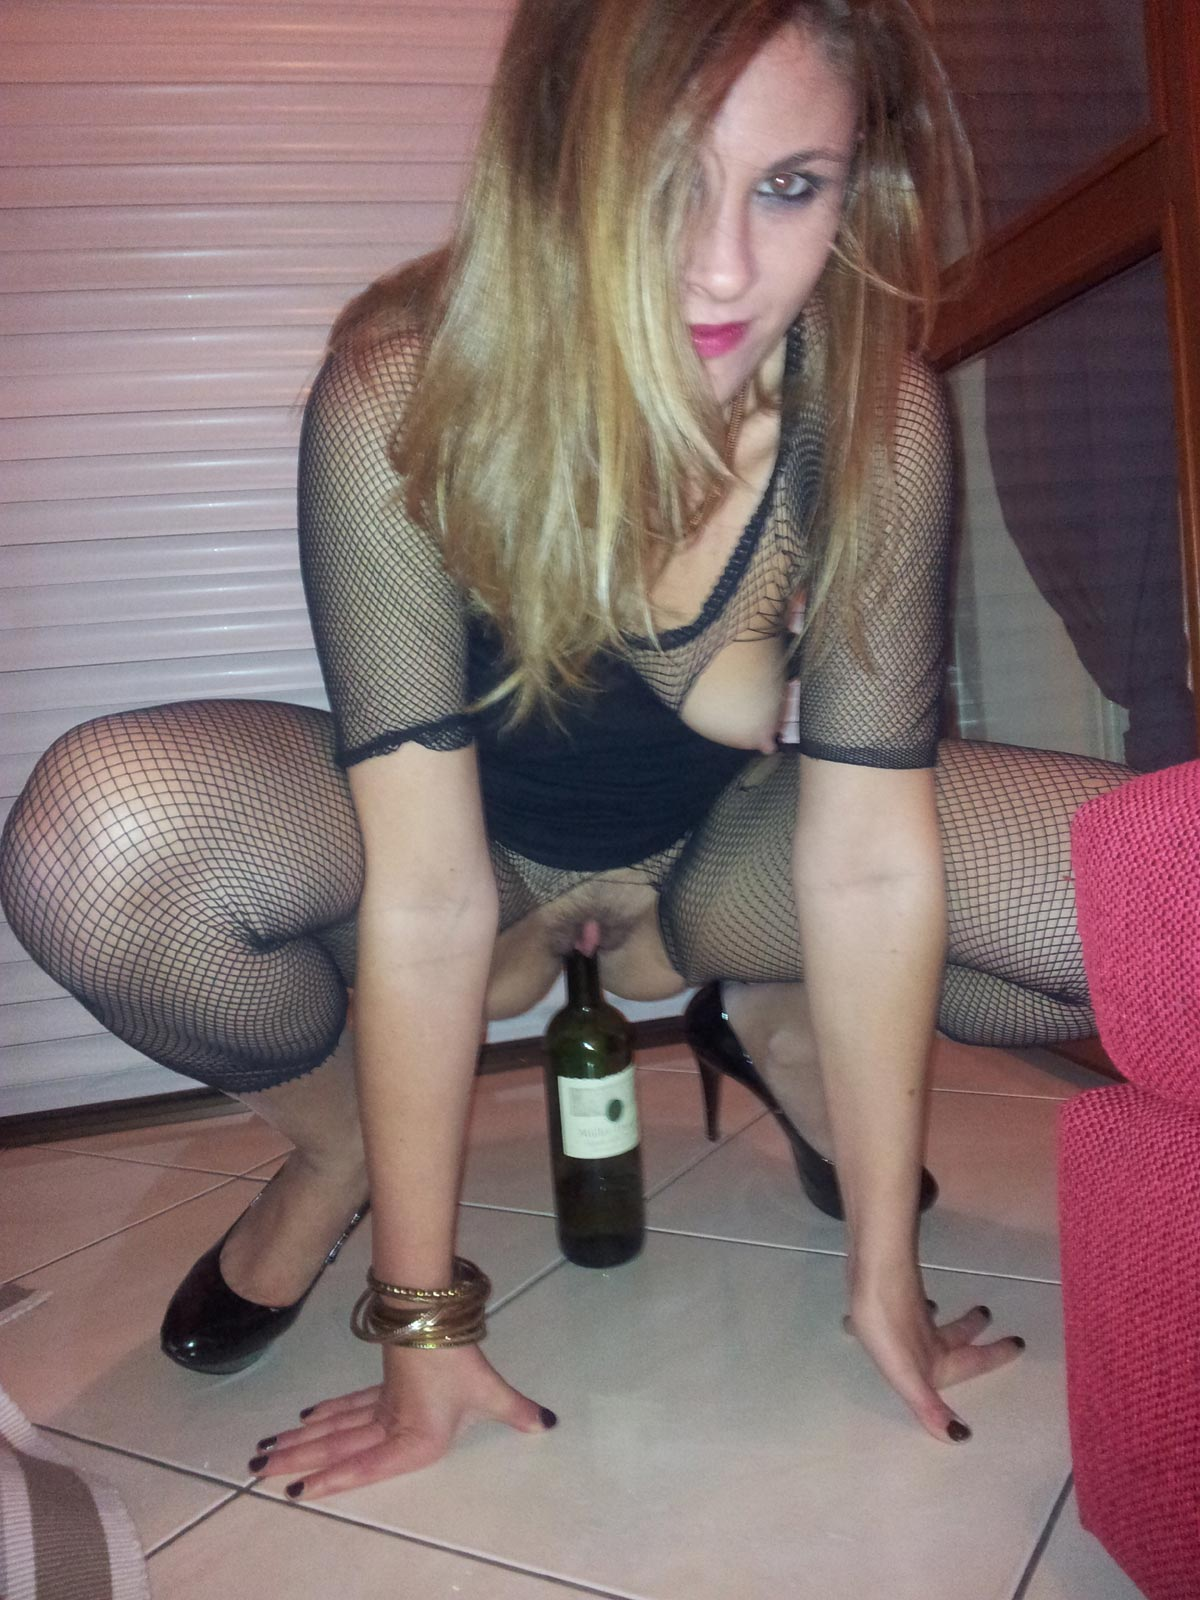 sexe insolite sexe chatte